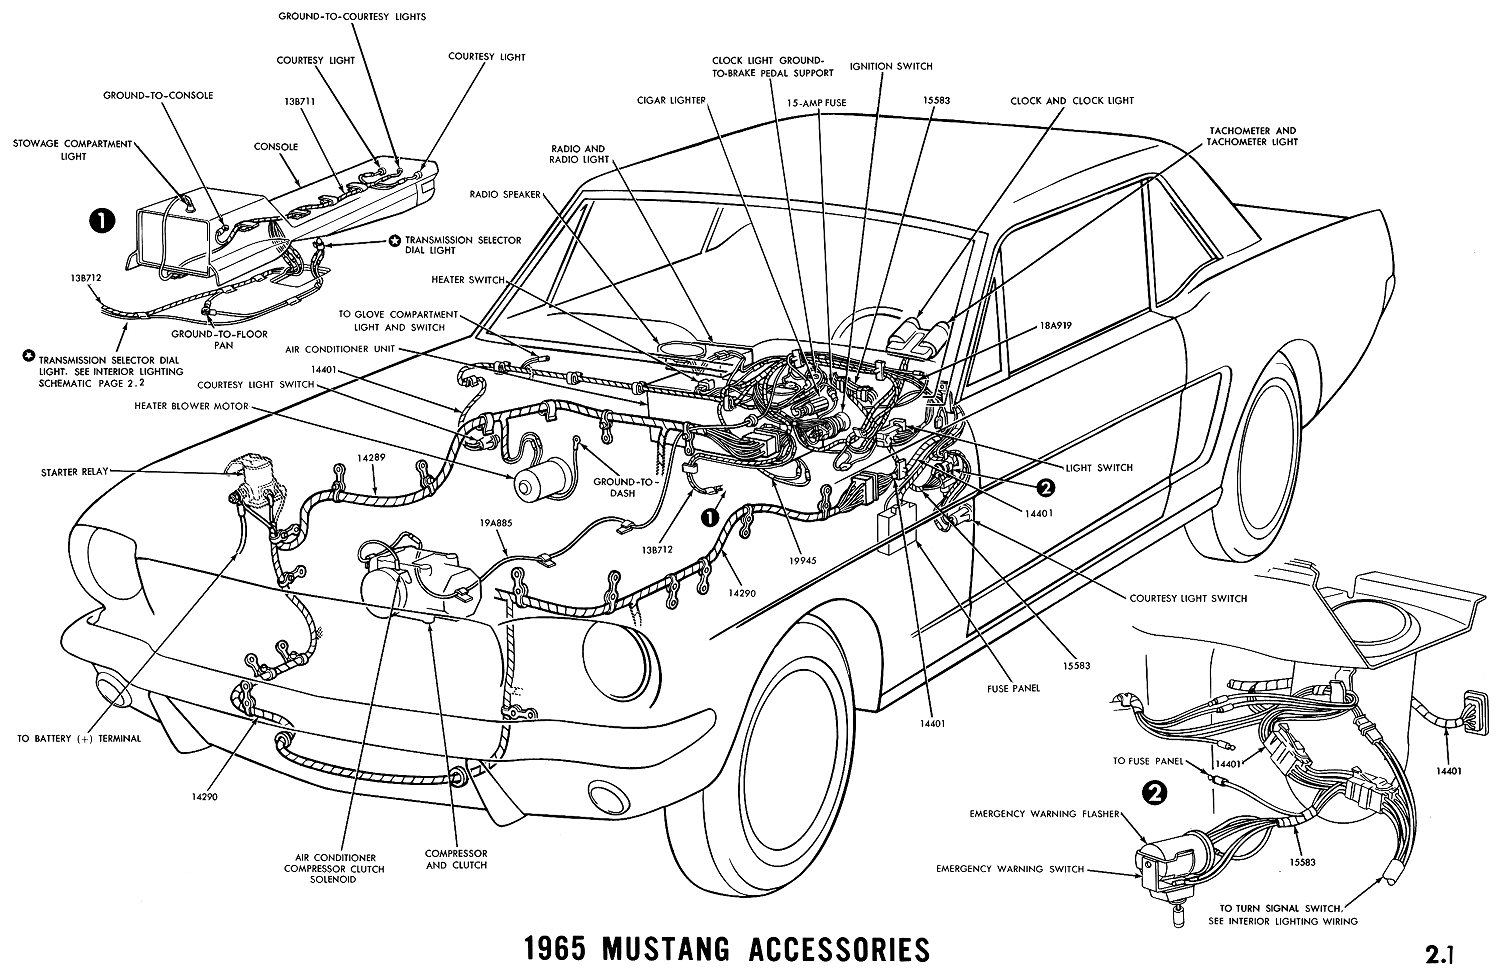 hight resolution of 2008 ford mustang fuse panel location 2008 mustang fuse box diagram 2008 mustang fuse box location